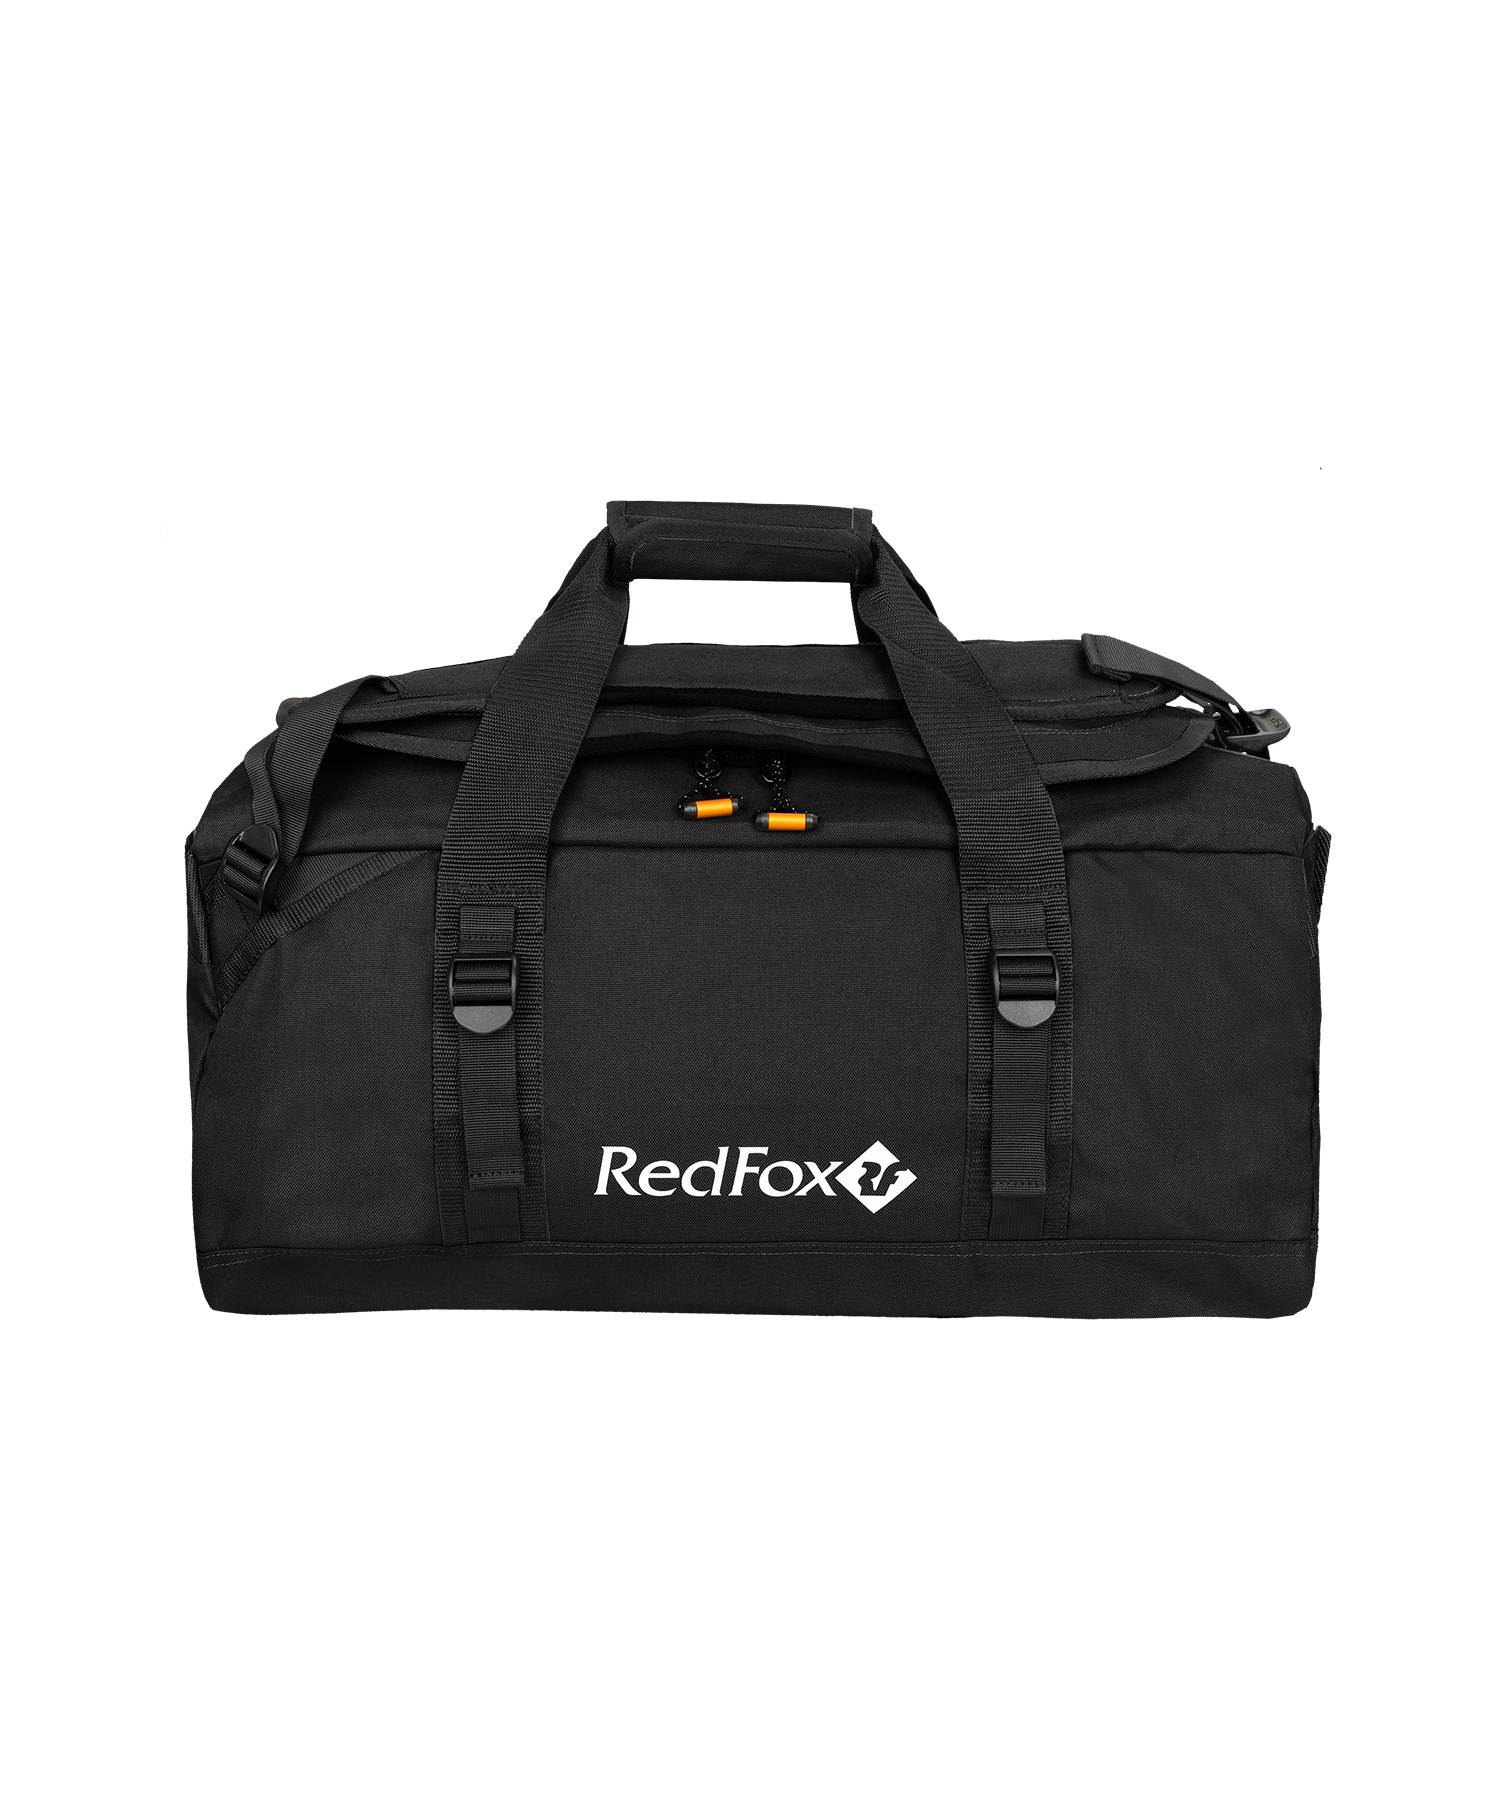 БАУЛ REDFOX EXPEDITION DUFFEL JET 50